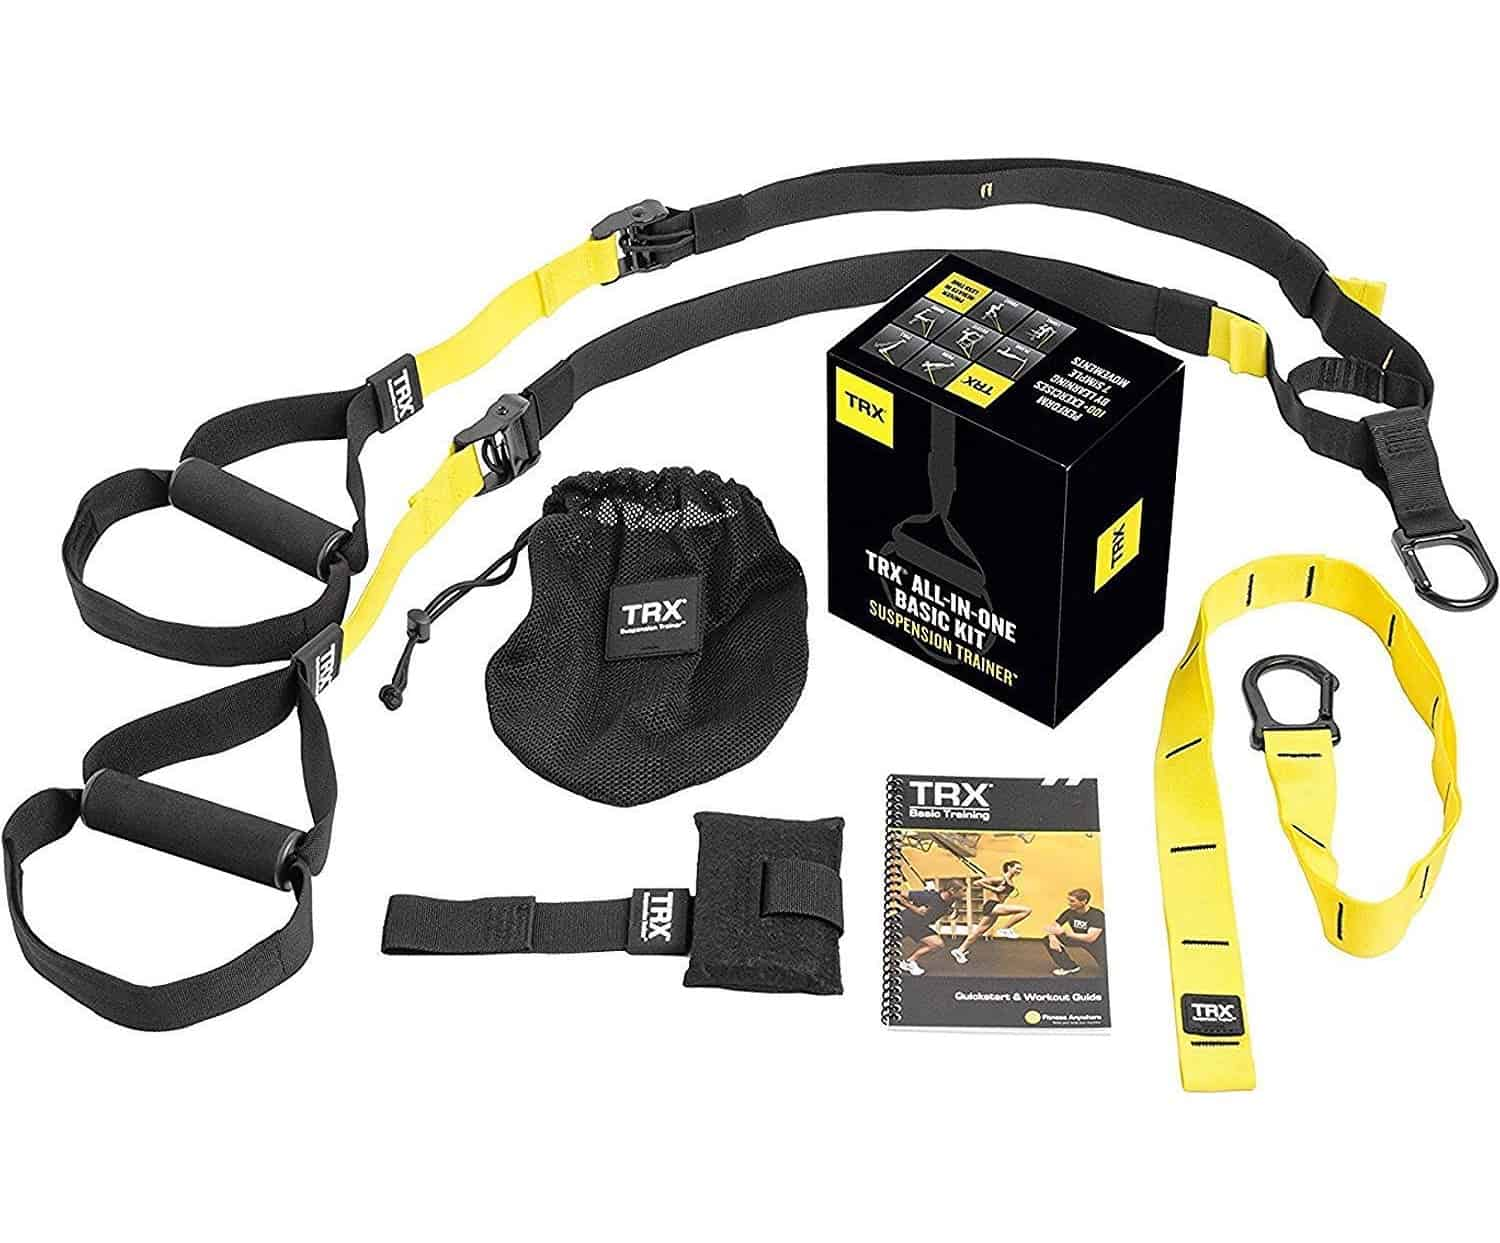 The TRX all-in-one system is the original and best suspension trainer